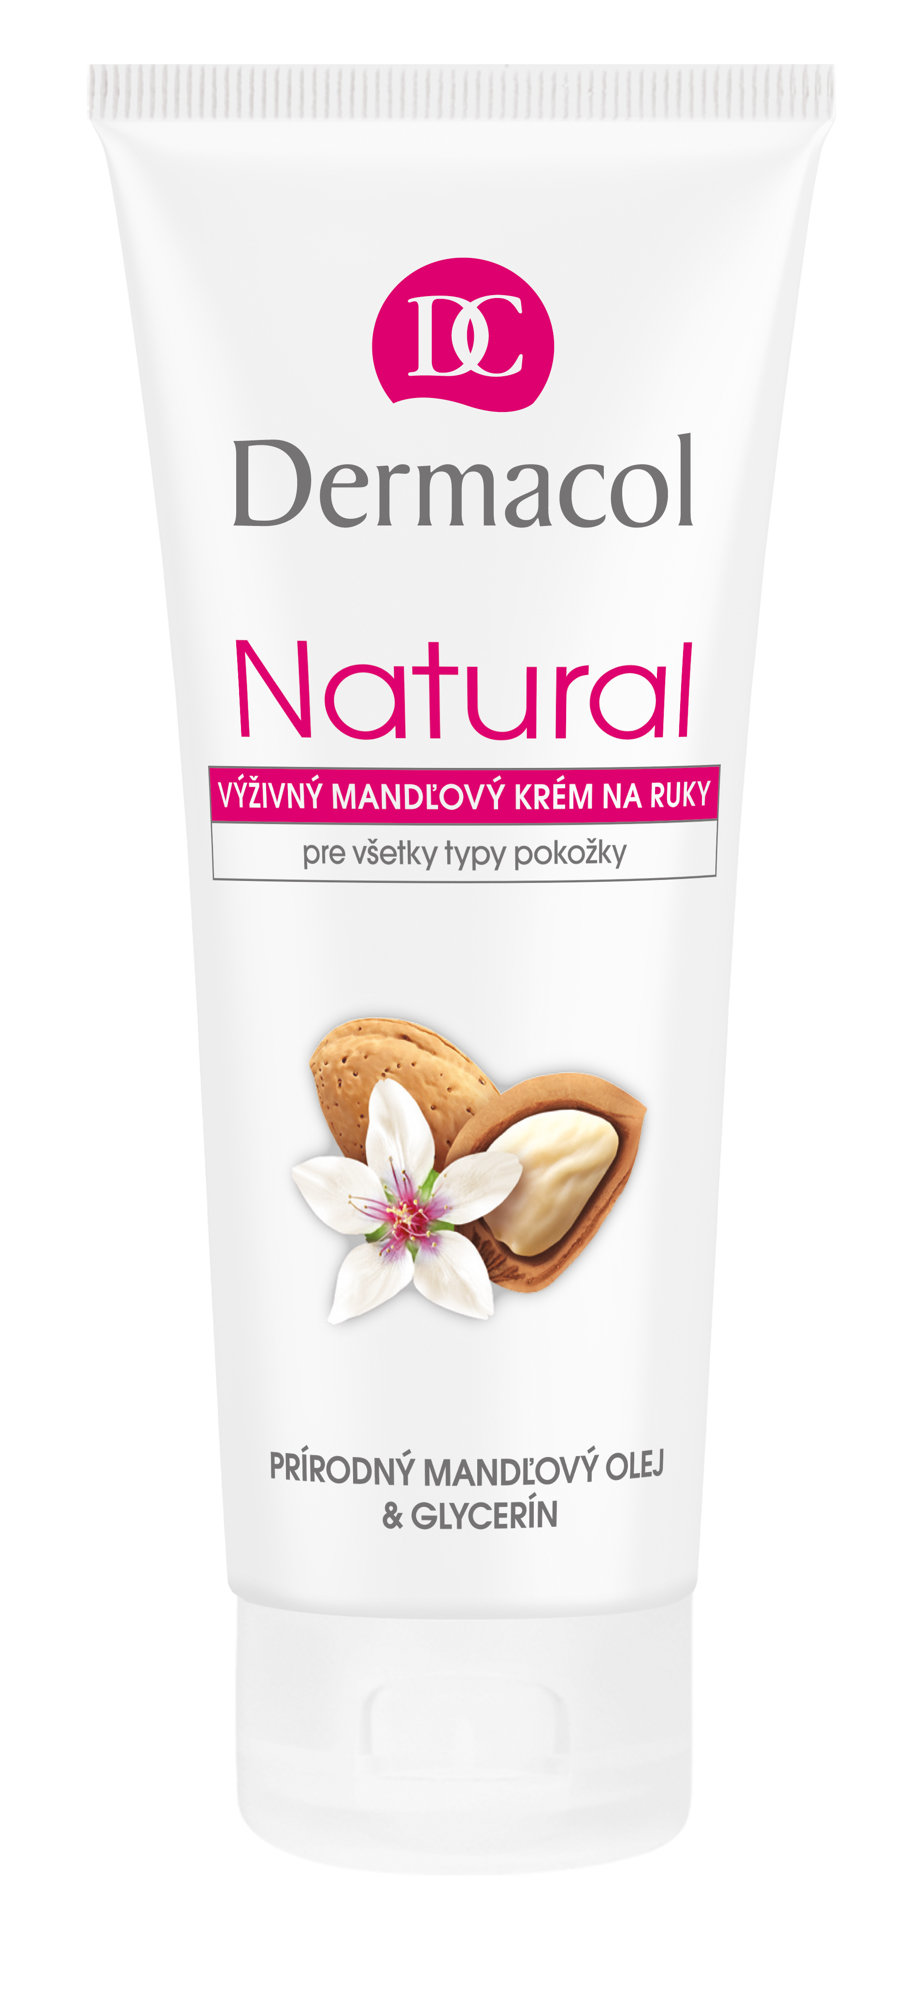 Dermacol Natural Almond, Krém na ruky 100ml